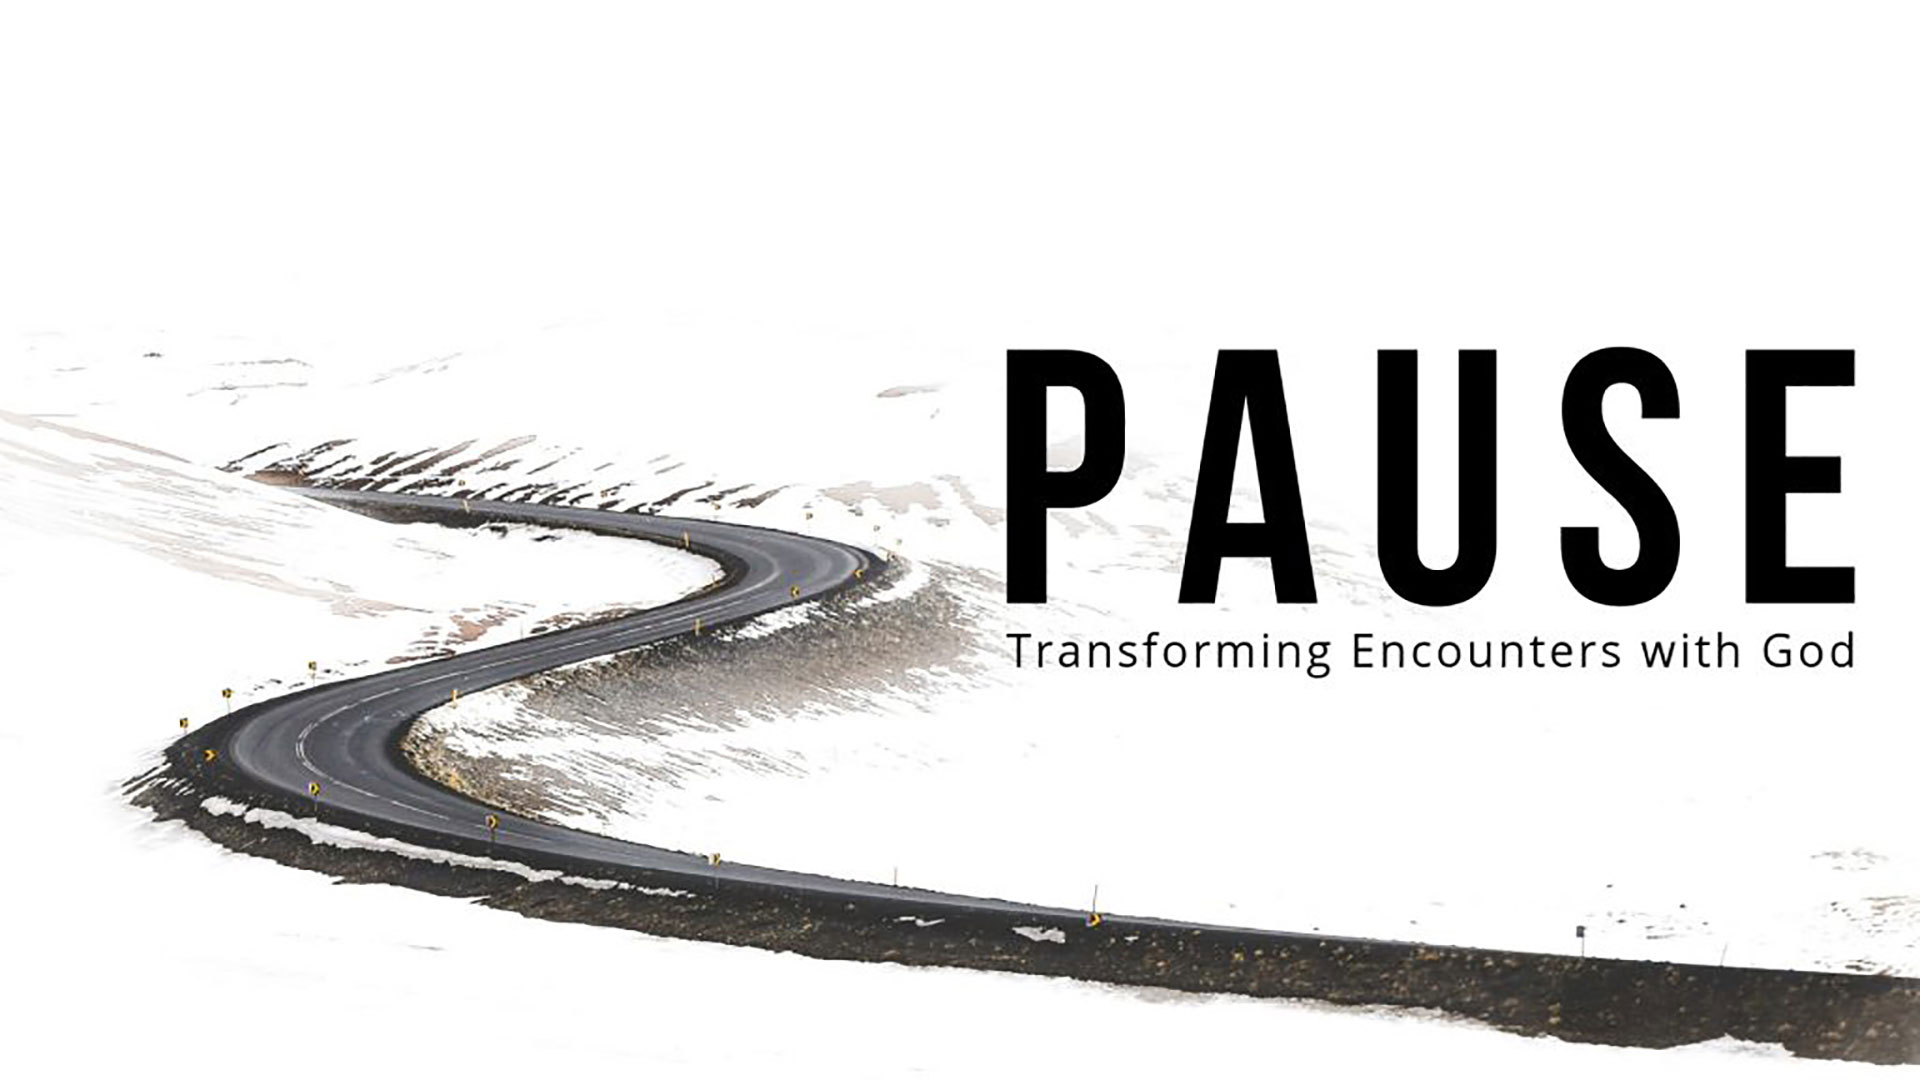 Series: Pause: Transforming Encounters With God